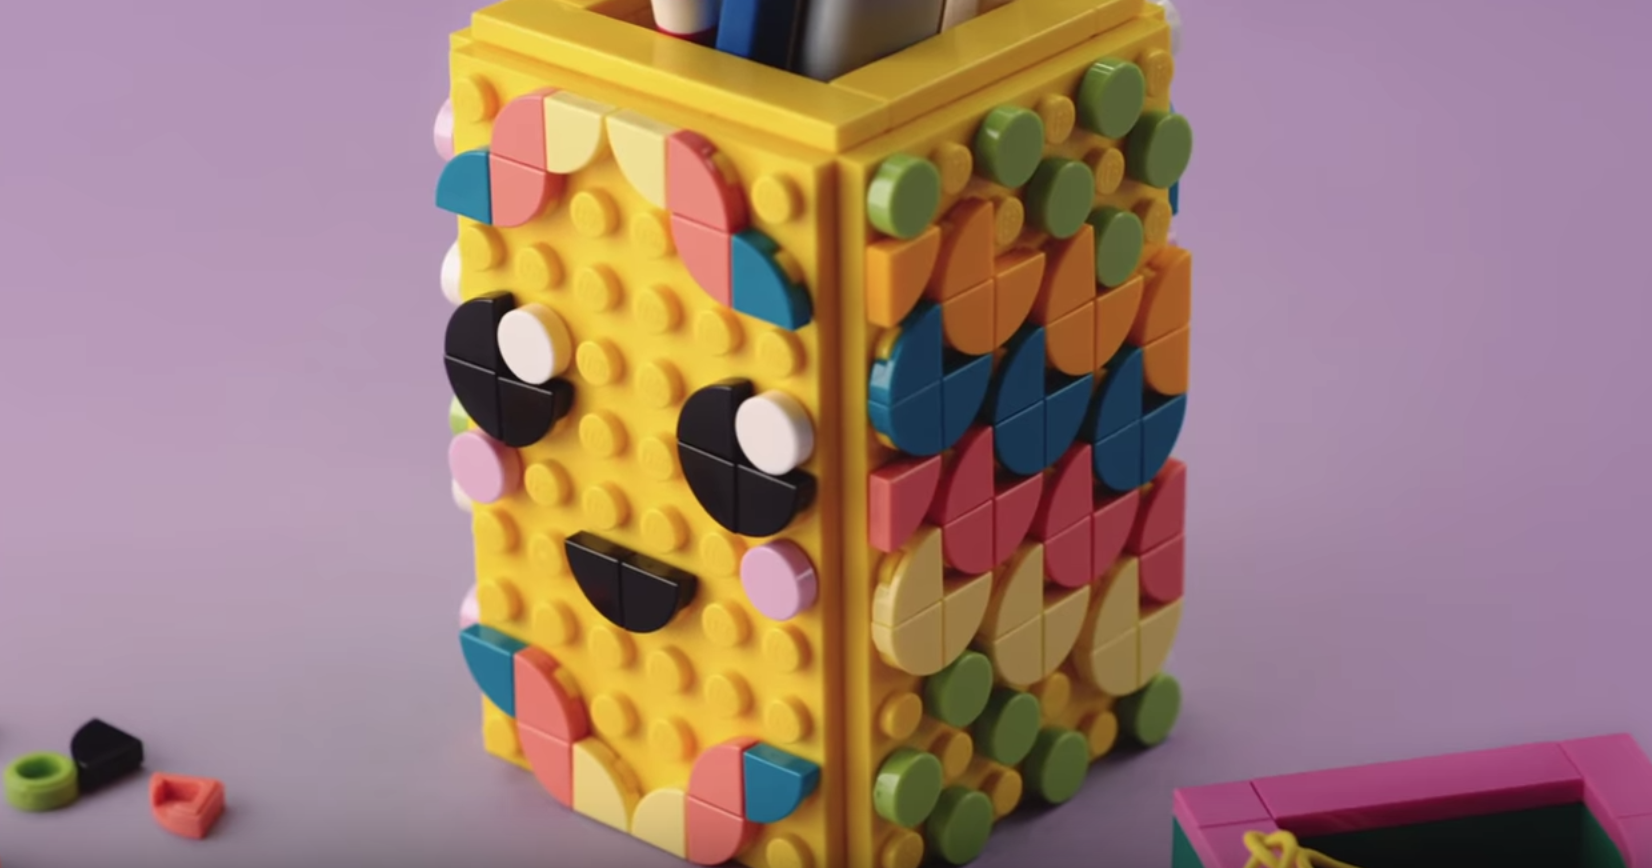 Lego Shows You How To Create Some Handmade Home Décor In This Video